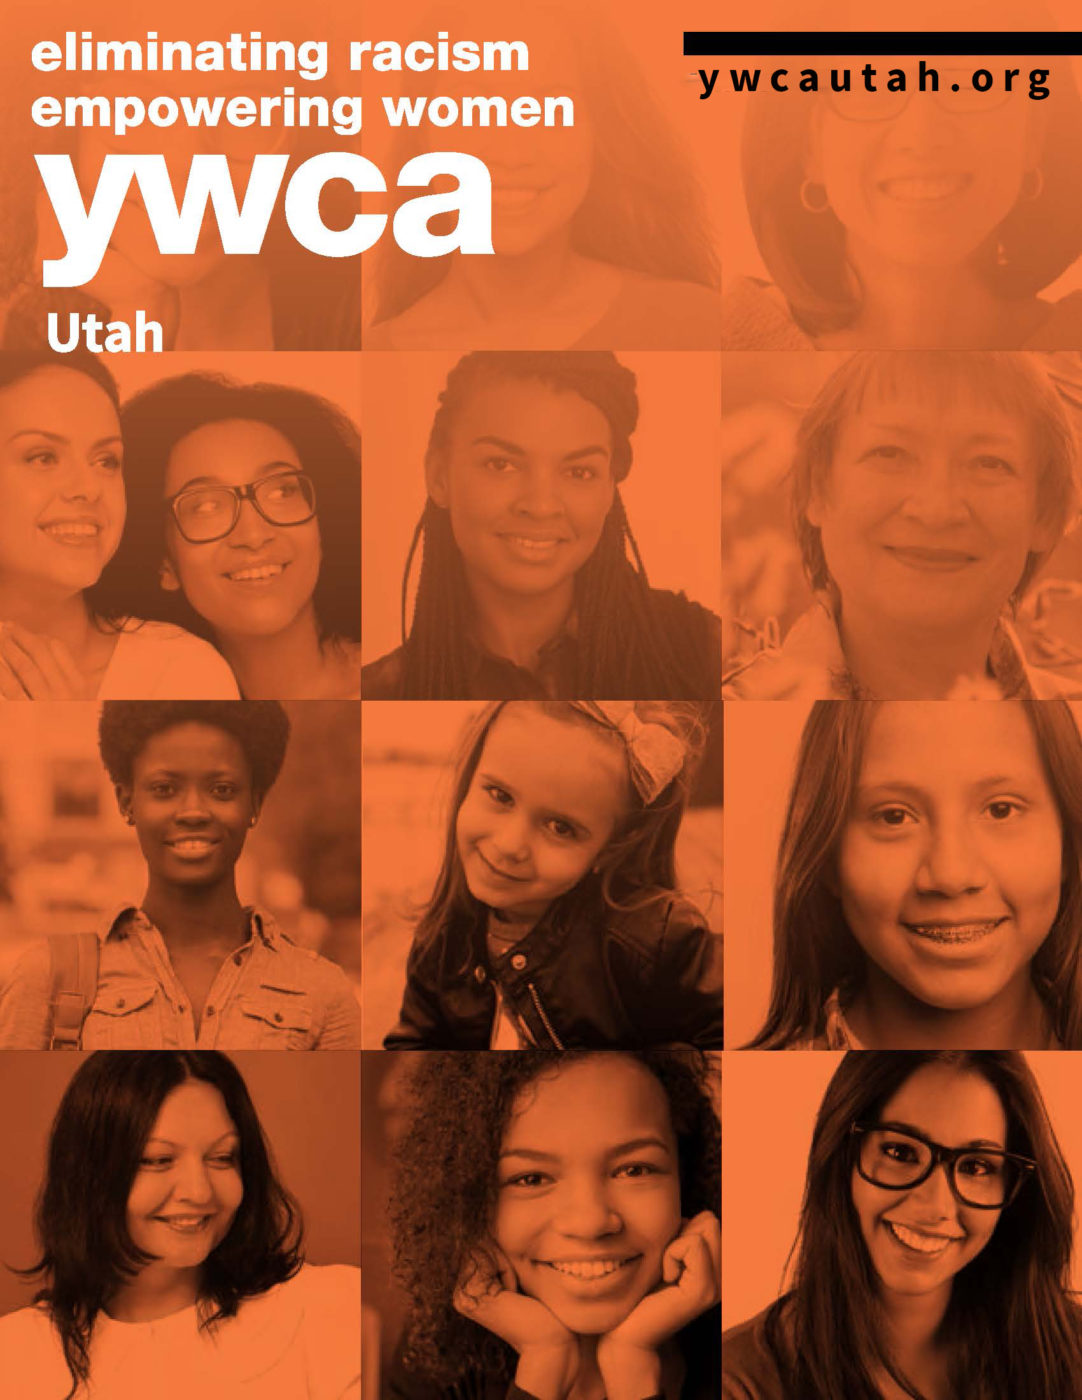 YWCA Utah Annual Report 2015-2016